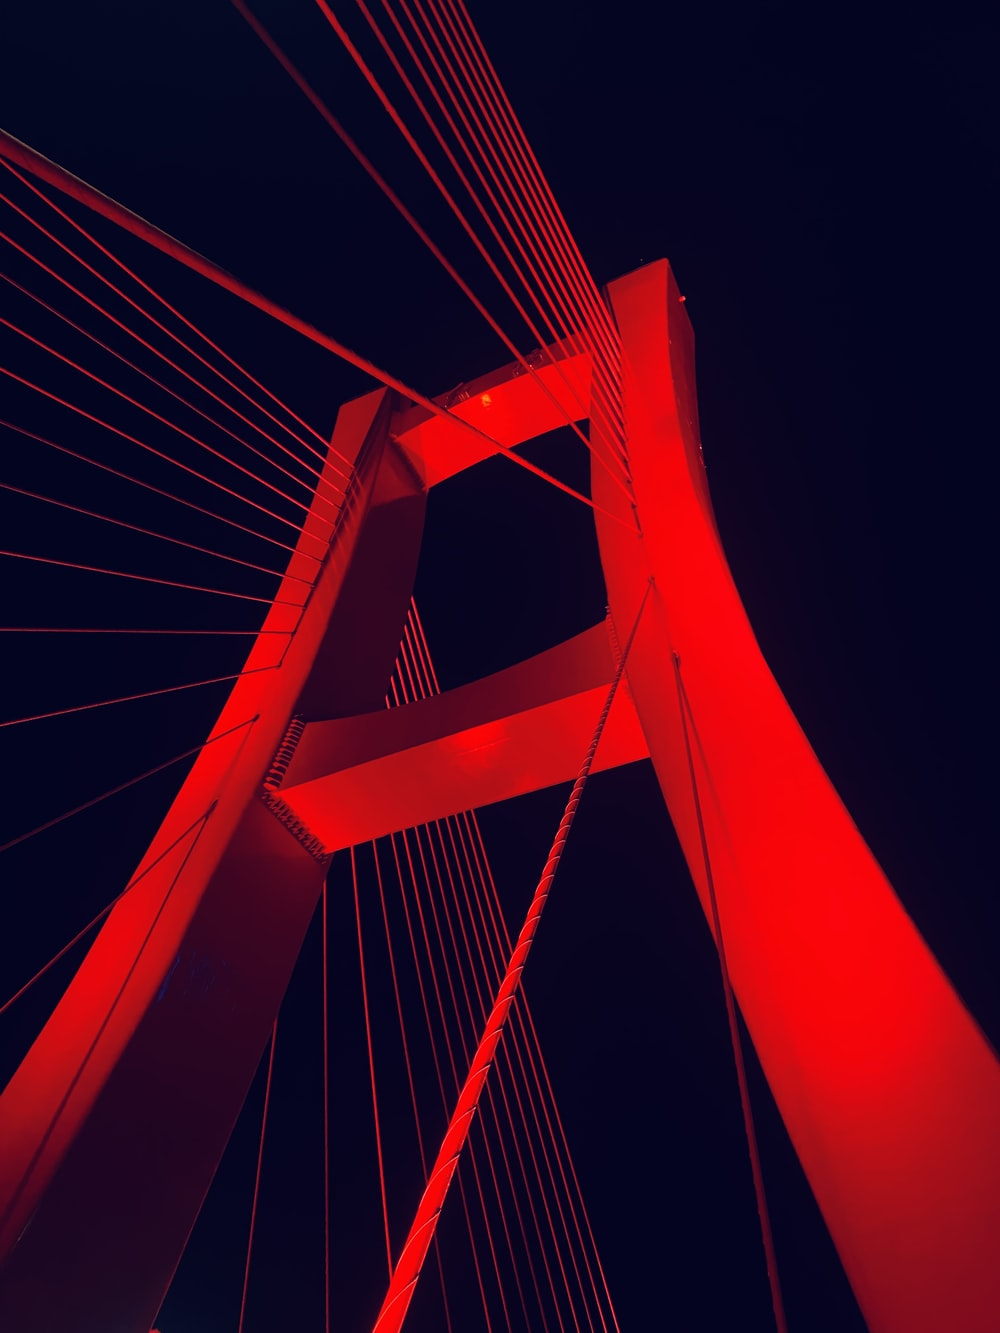 red bridge with white lights